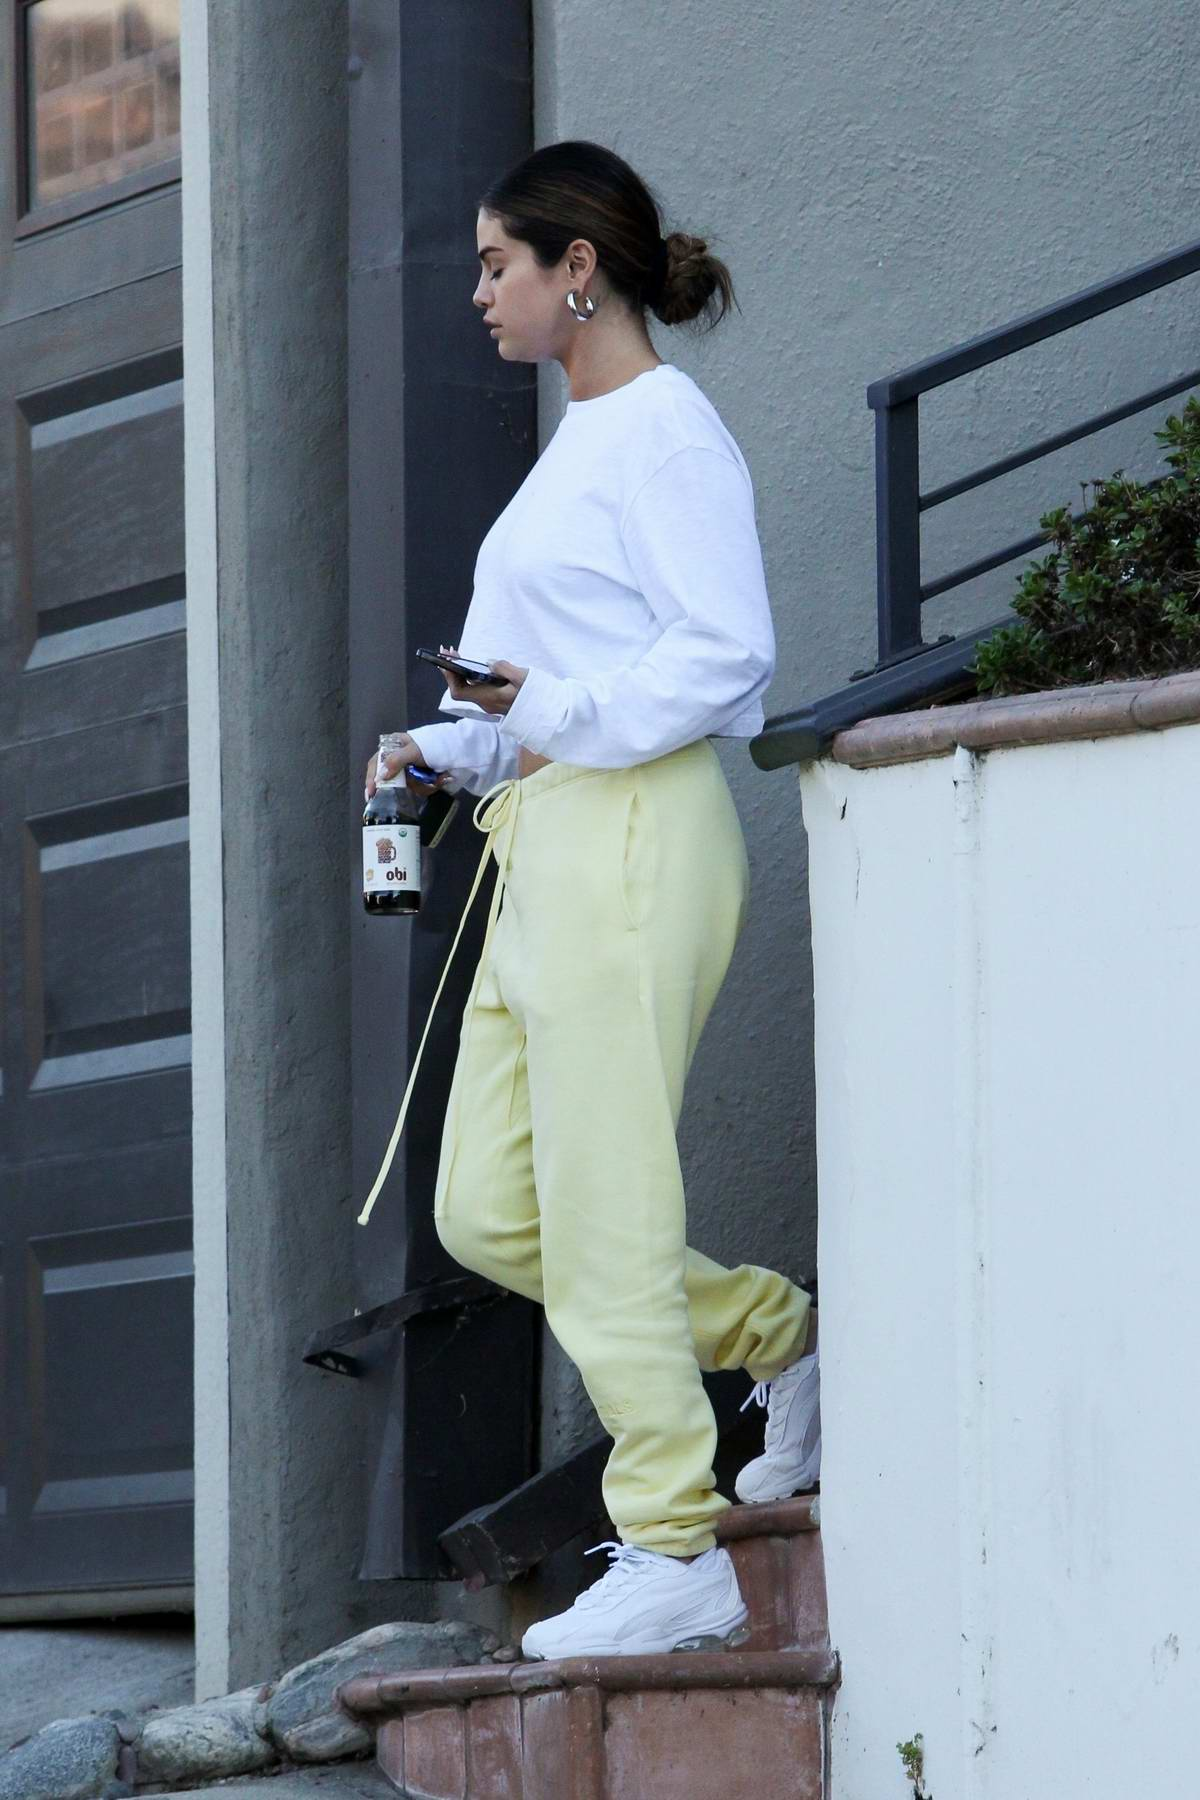 Selena Gomez sports a casual look while visiting a friend in Los Angeles